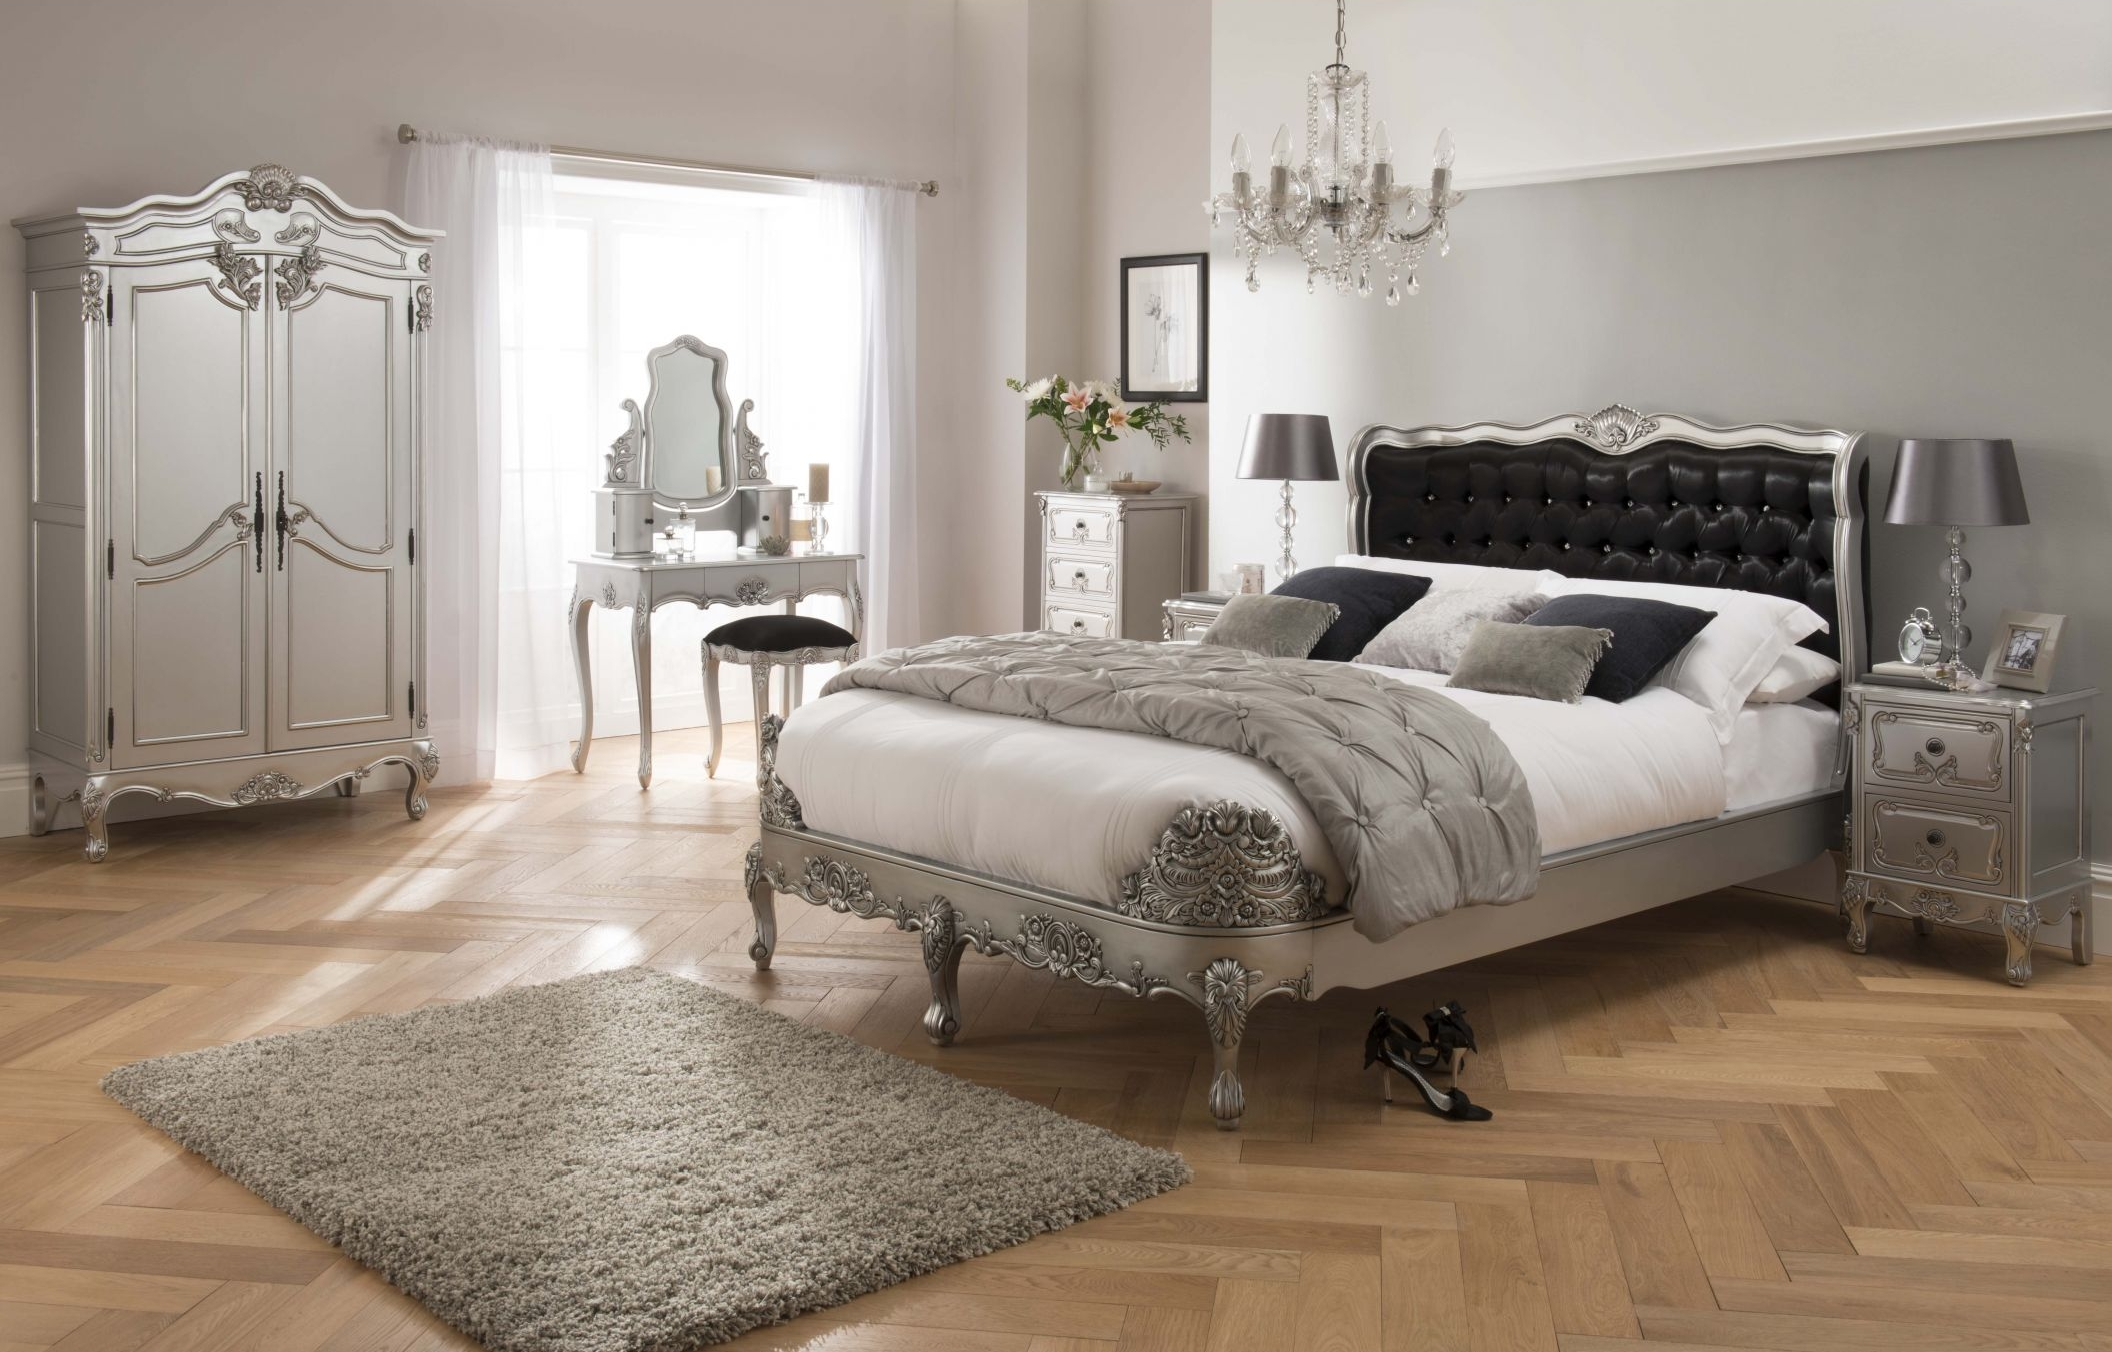 Bed from Silver Baroque collection